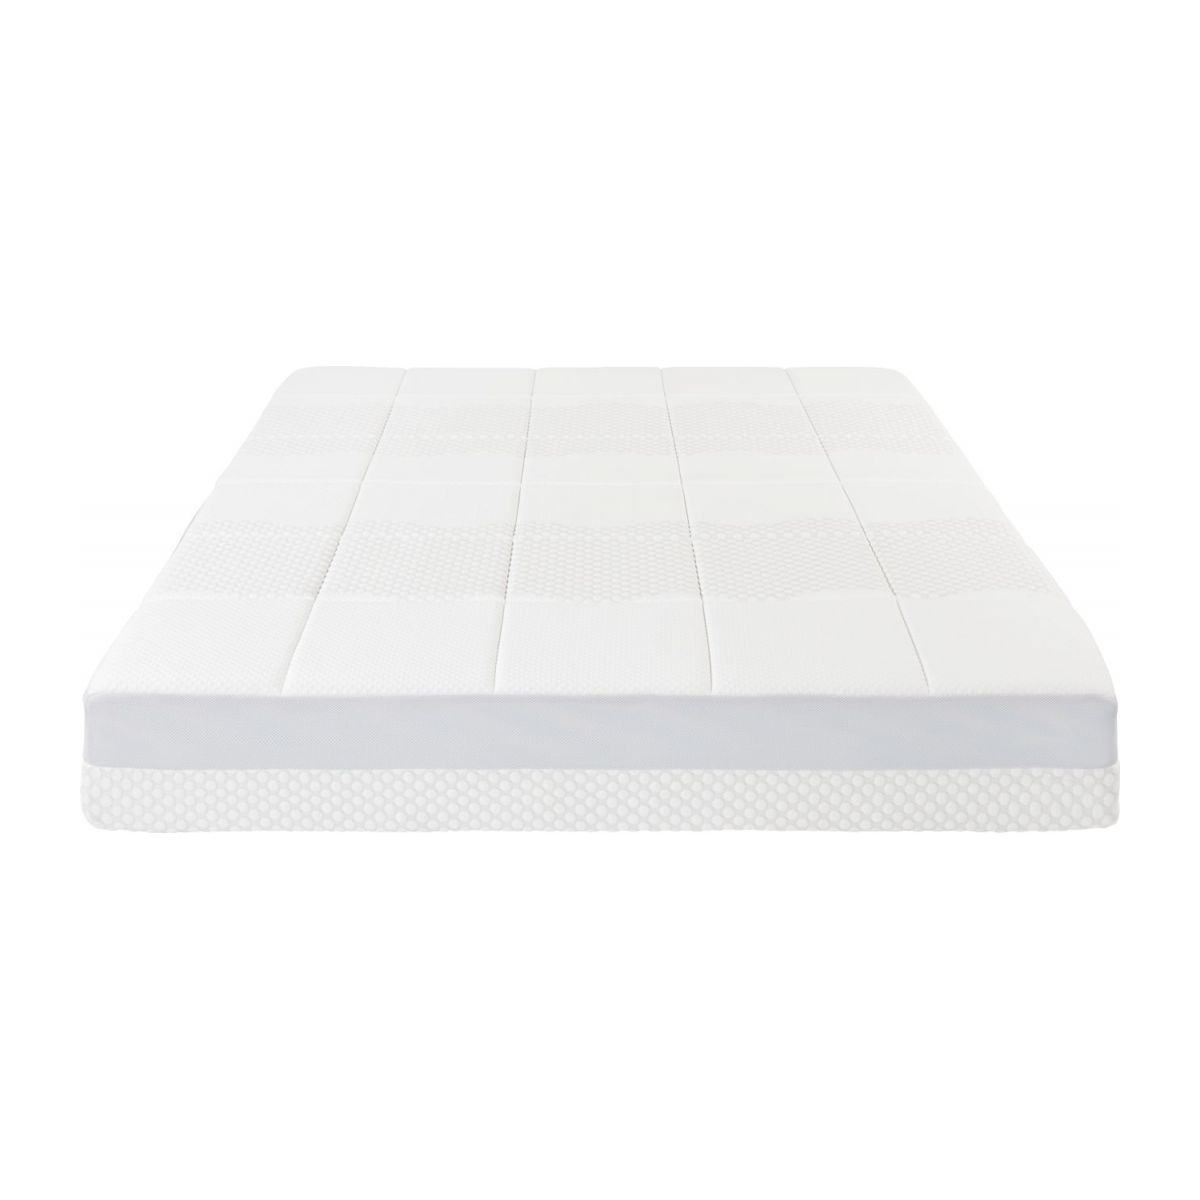 Foam mattress, width 24 cm, 160x200cm - medium support n°2